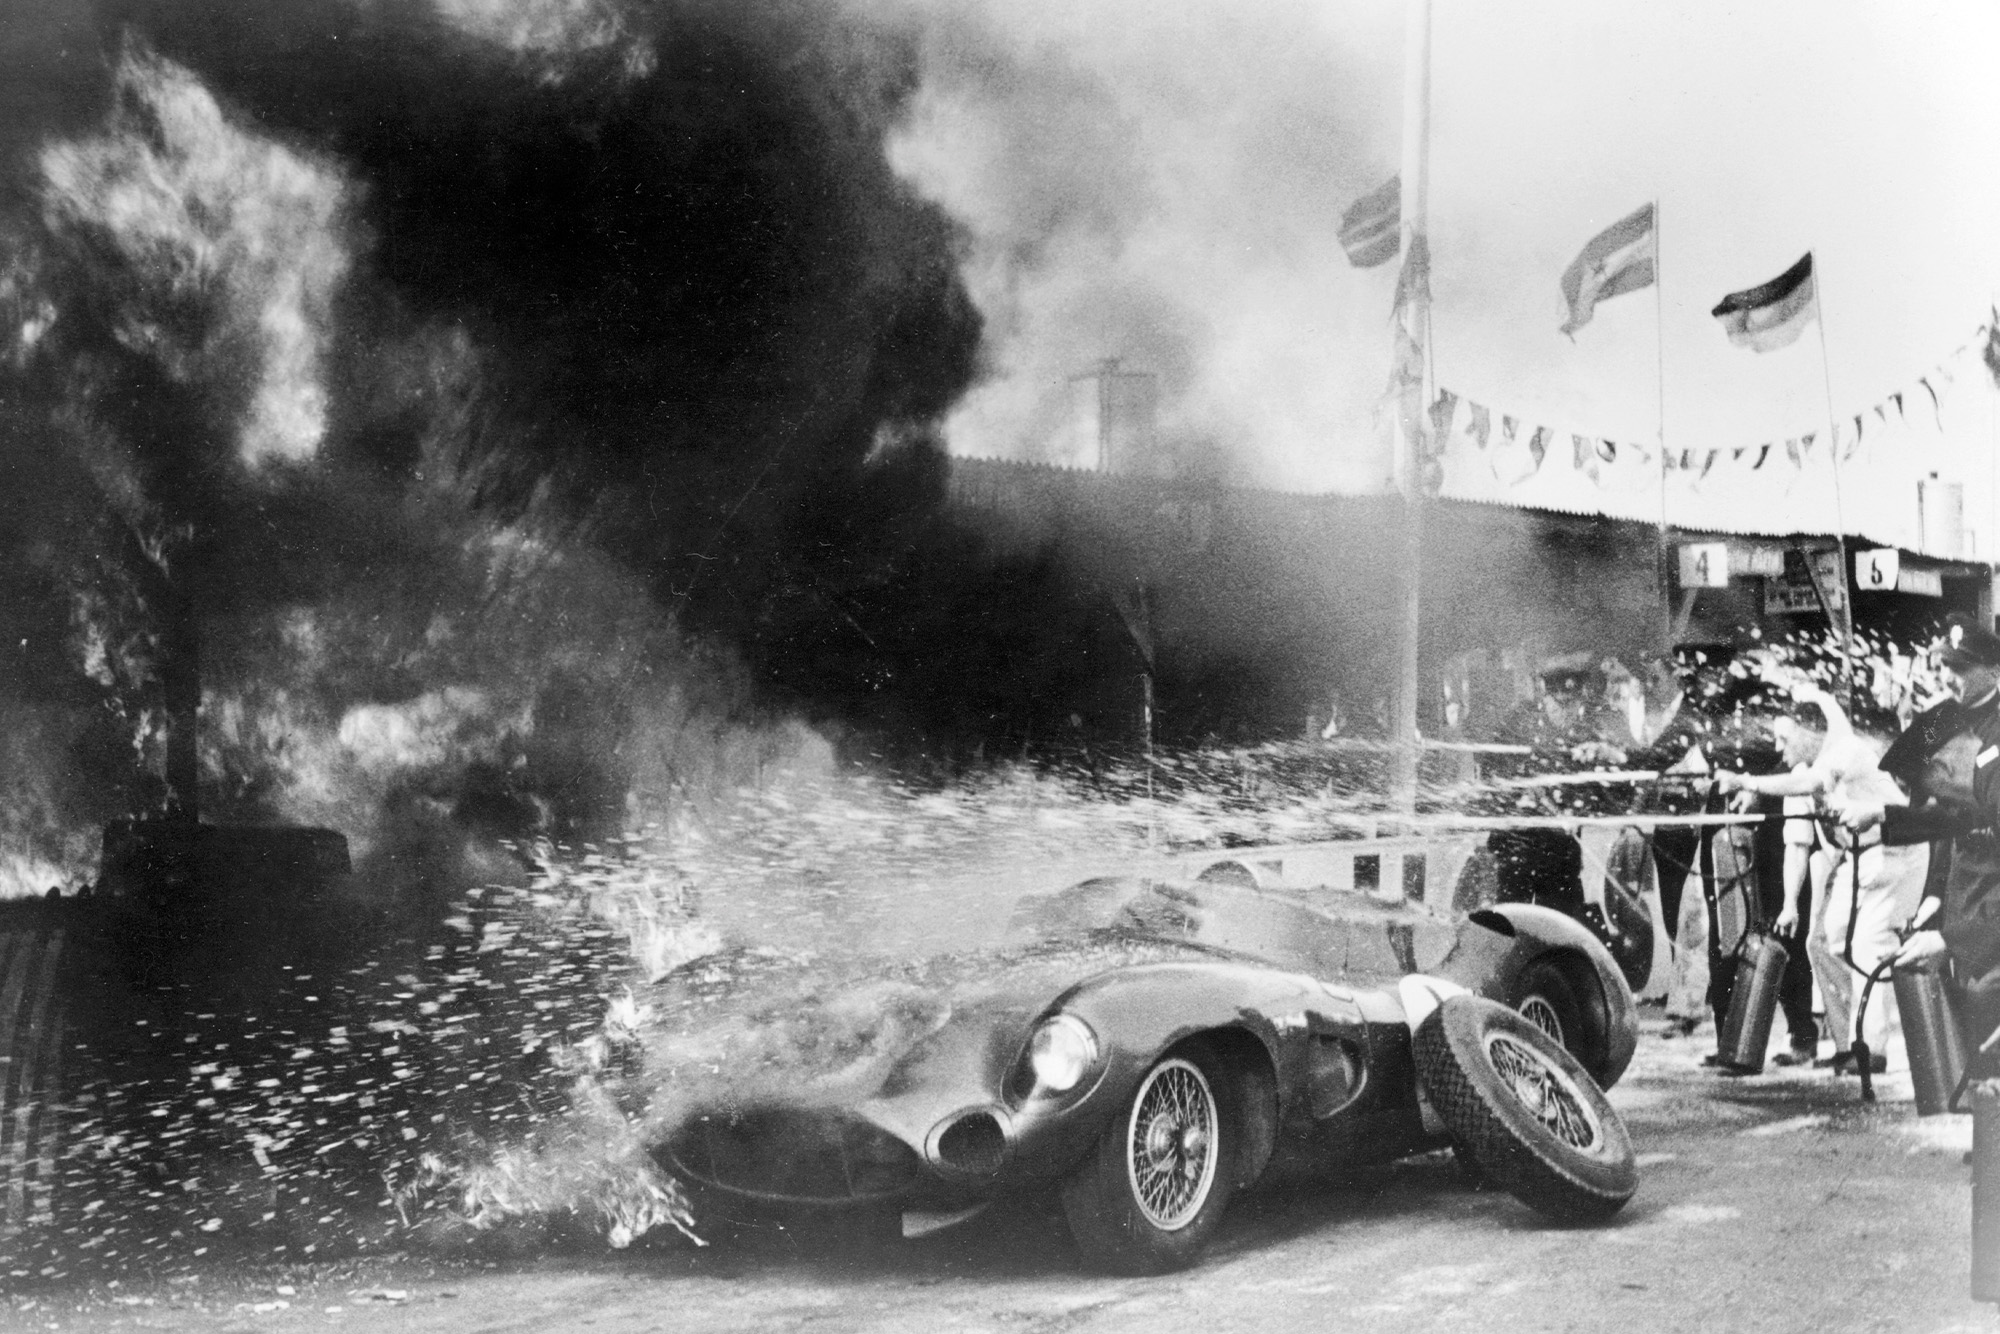 Pitlane fire at Goodwood in 1959